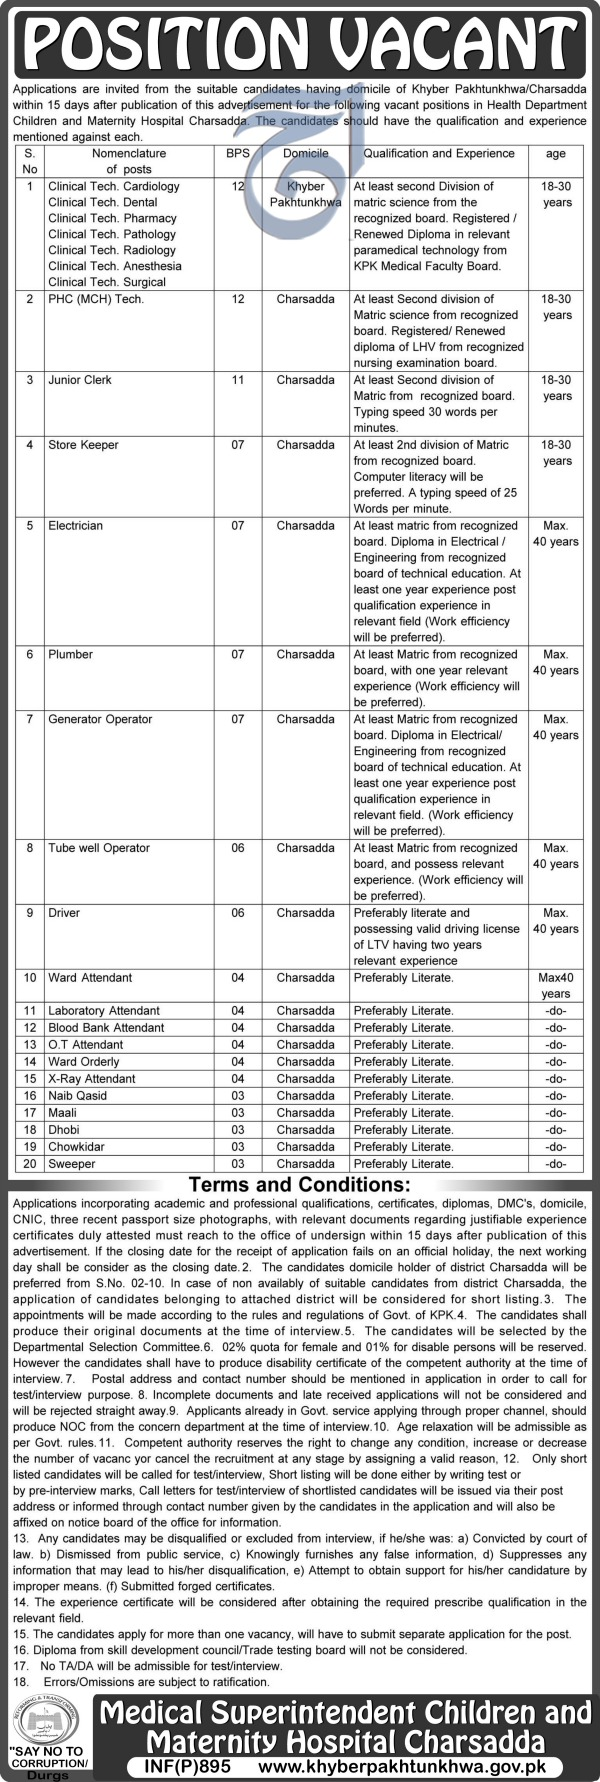 Jobs In Children And Maternity Hospital Charsadda 26 Feb 2018